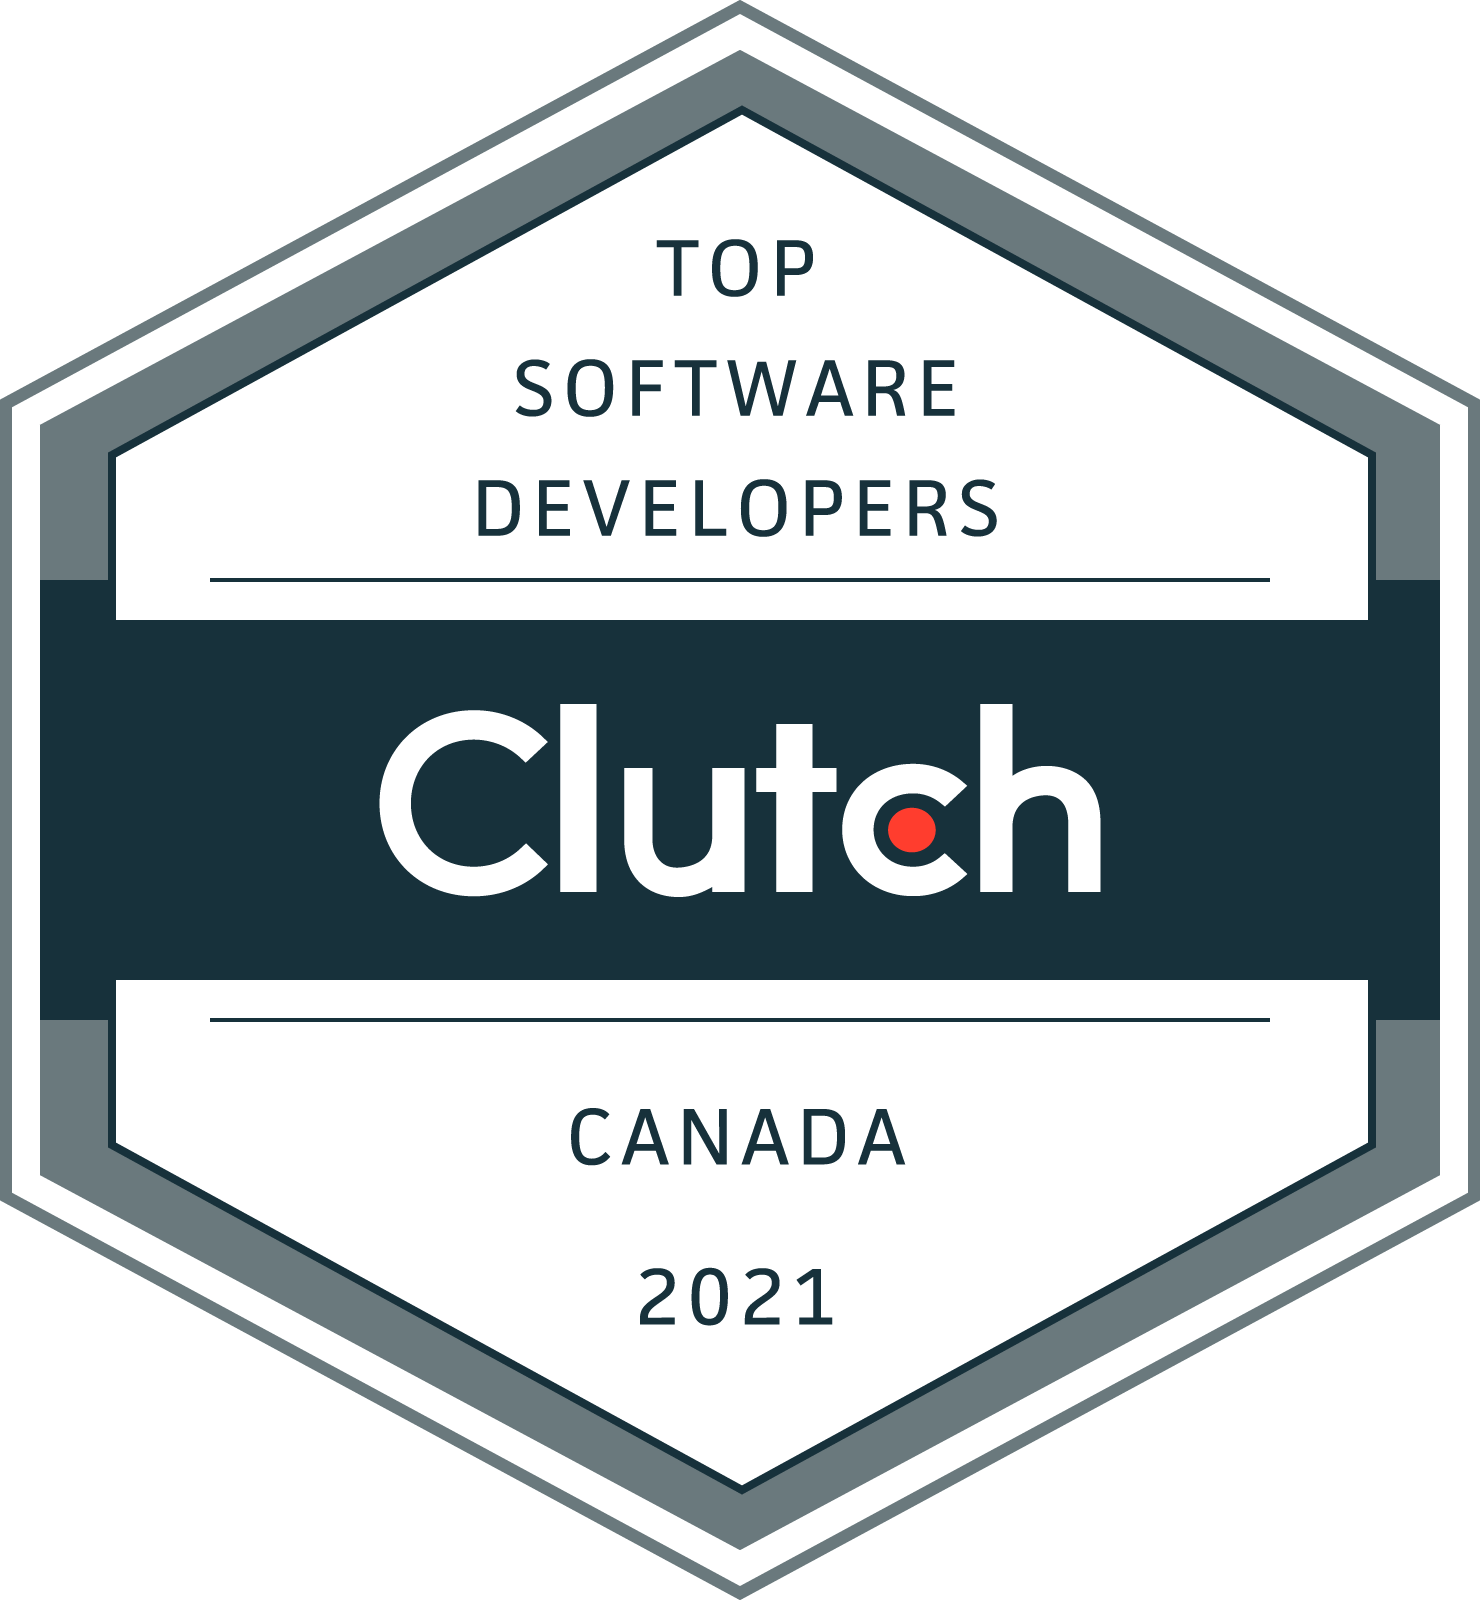 Synic software top software developer in Canada